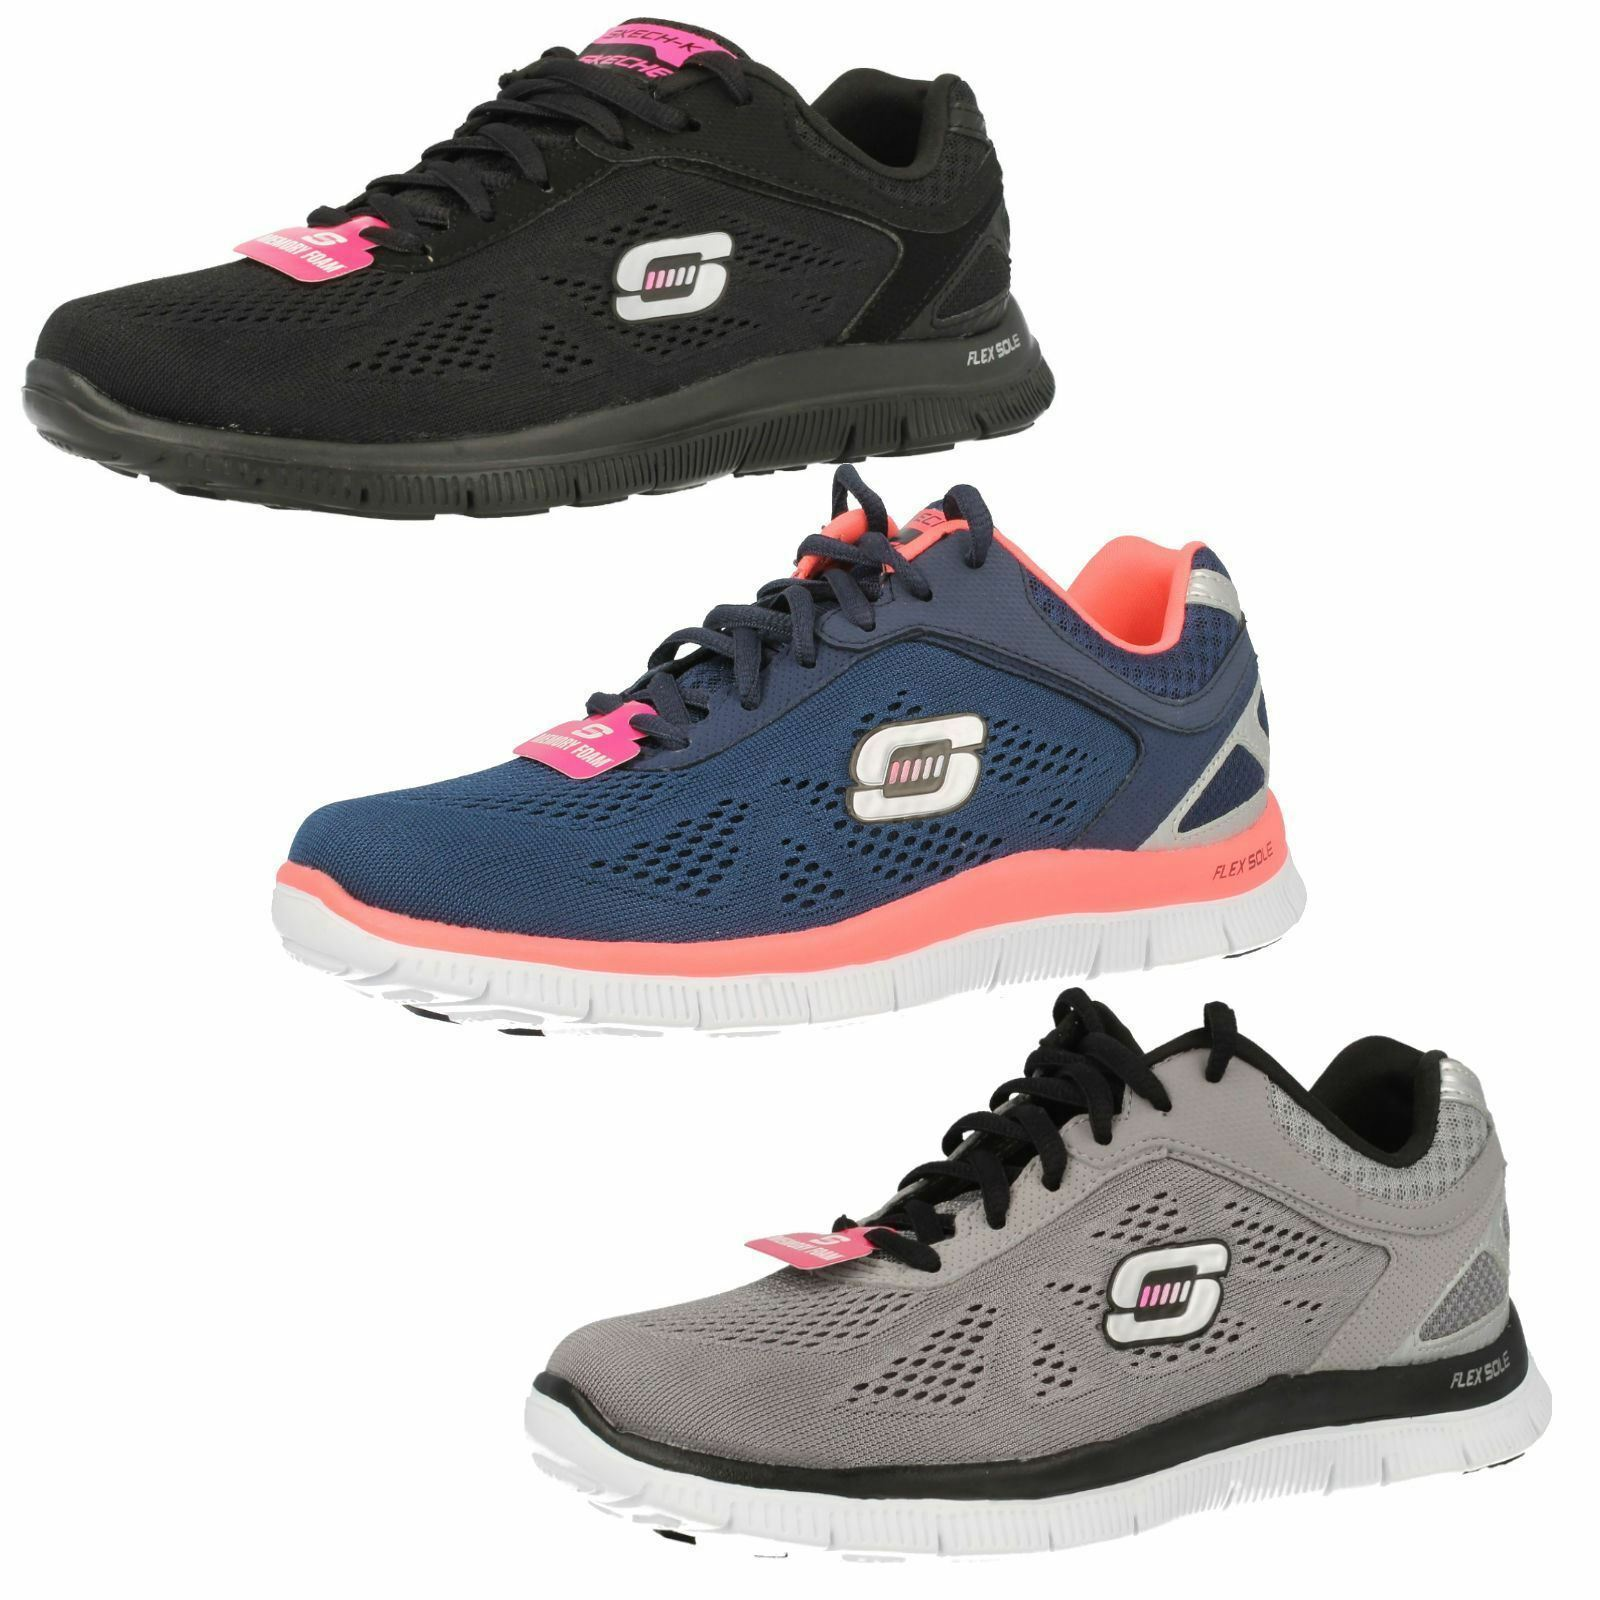 LADIES SKECHERS FLEX APPEAL LOVE YOUR STYLE MEMORY FOAM LACE UP TRAINERS 11728